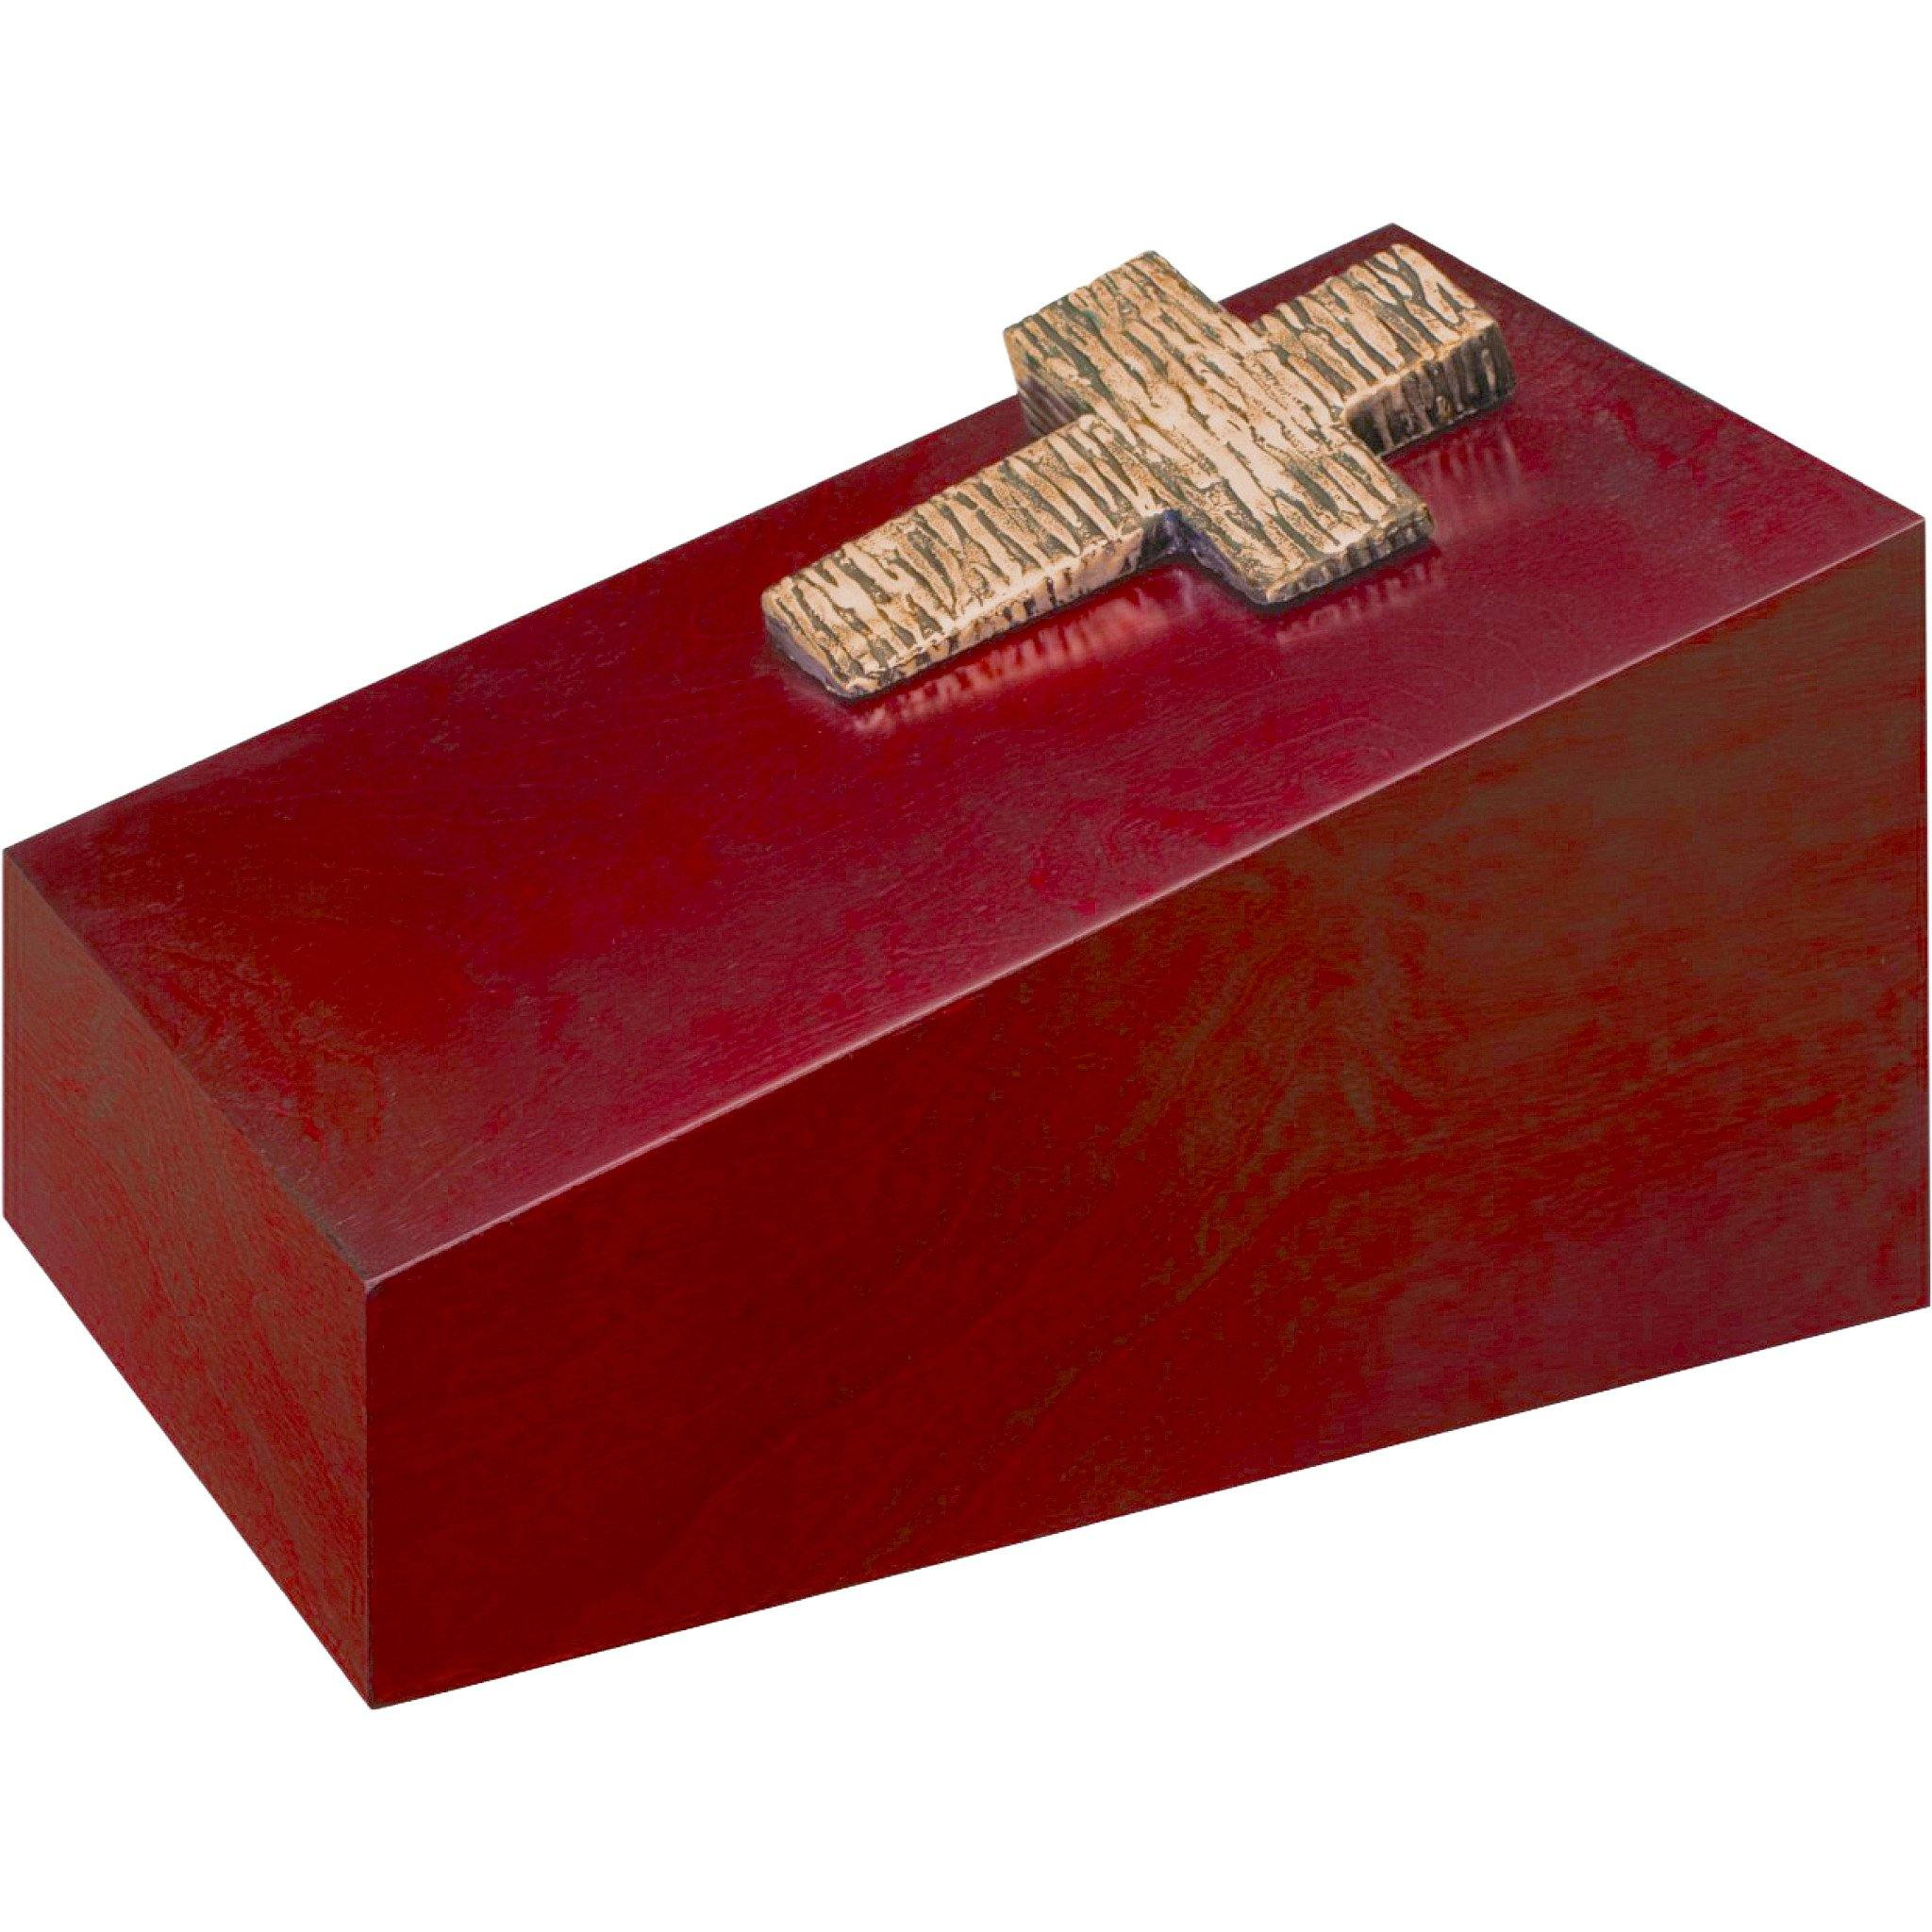 Beaminster Wooden Cremation Ashes Urn Crucifix - Urns UK